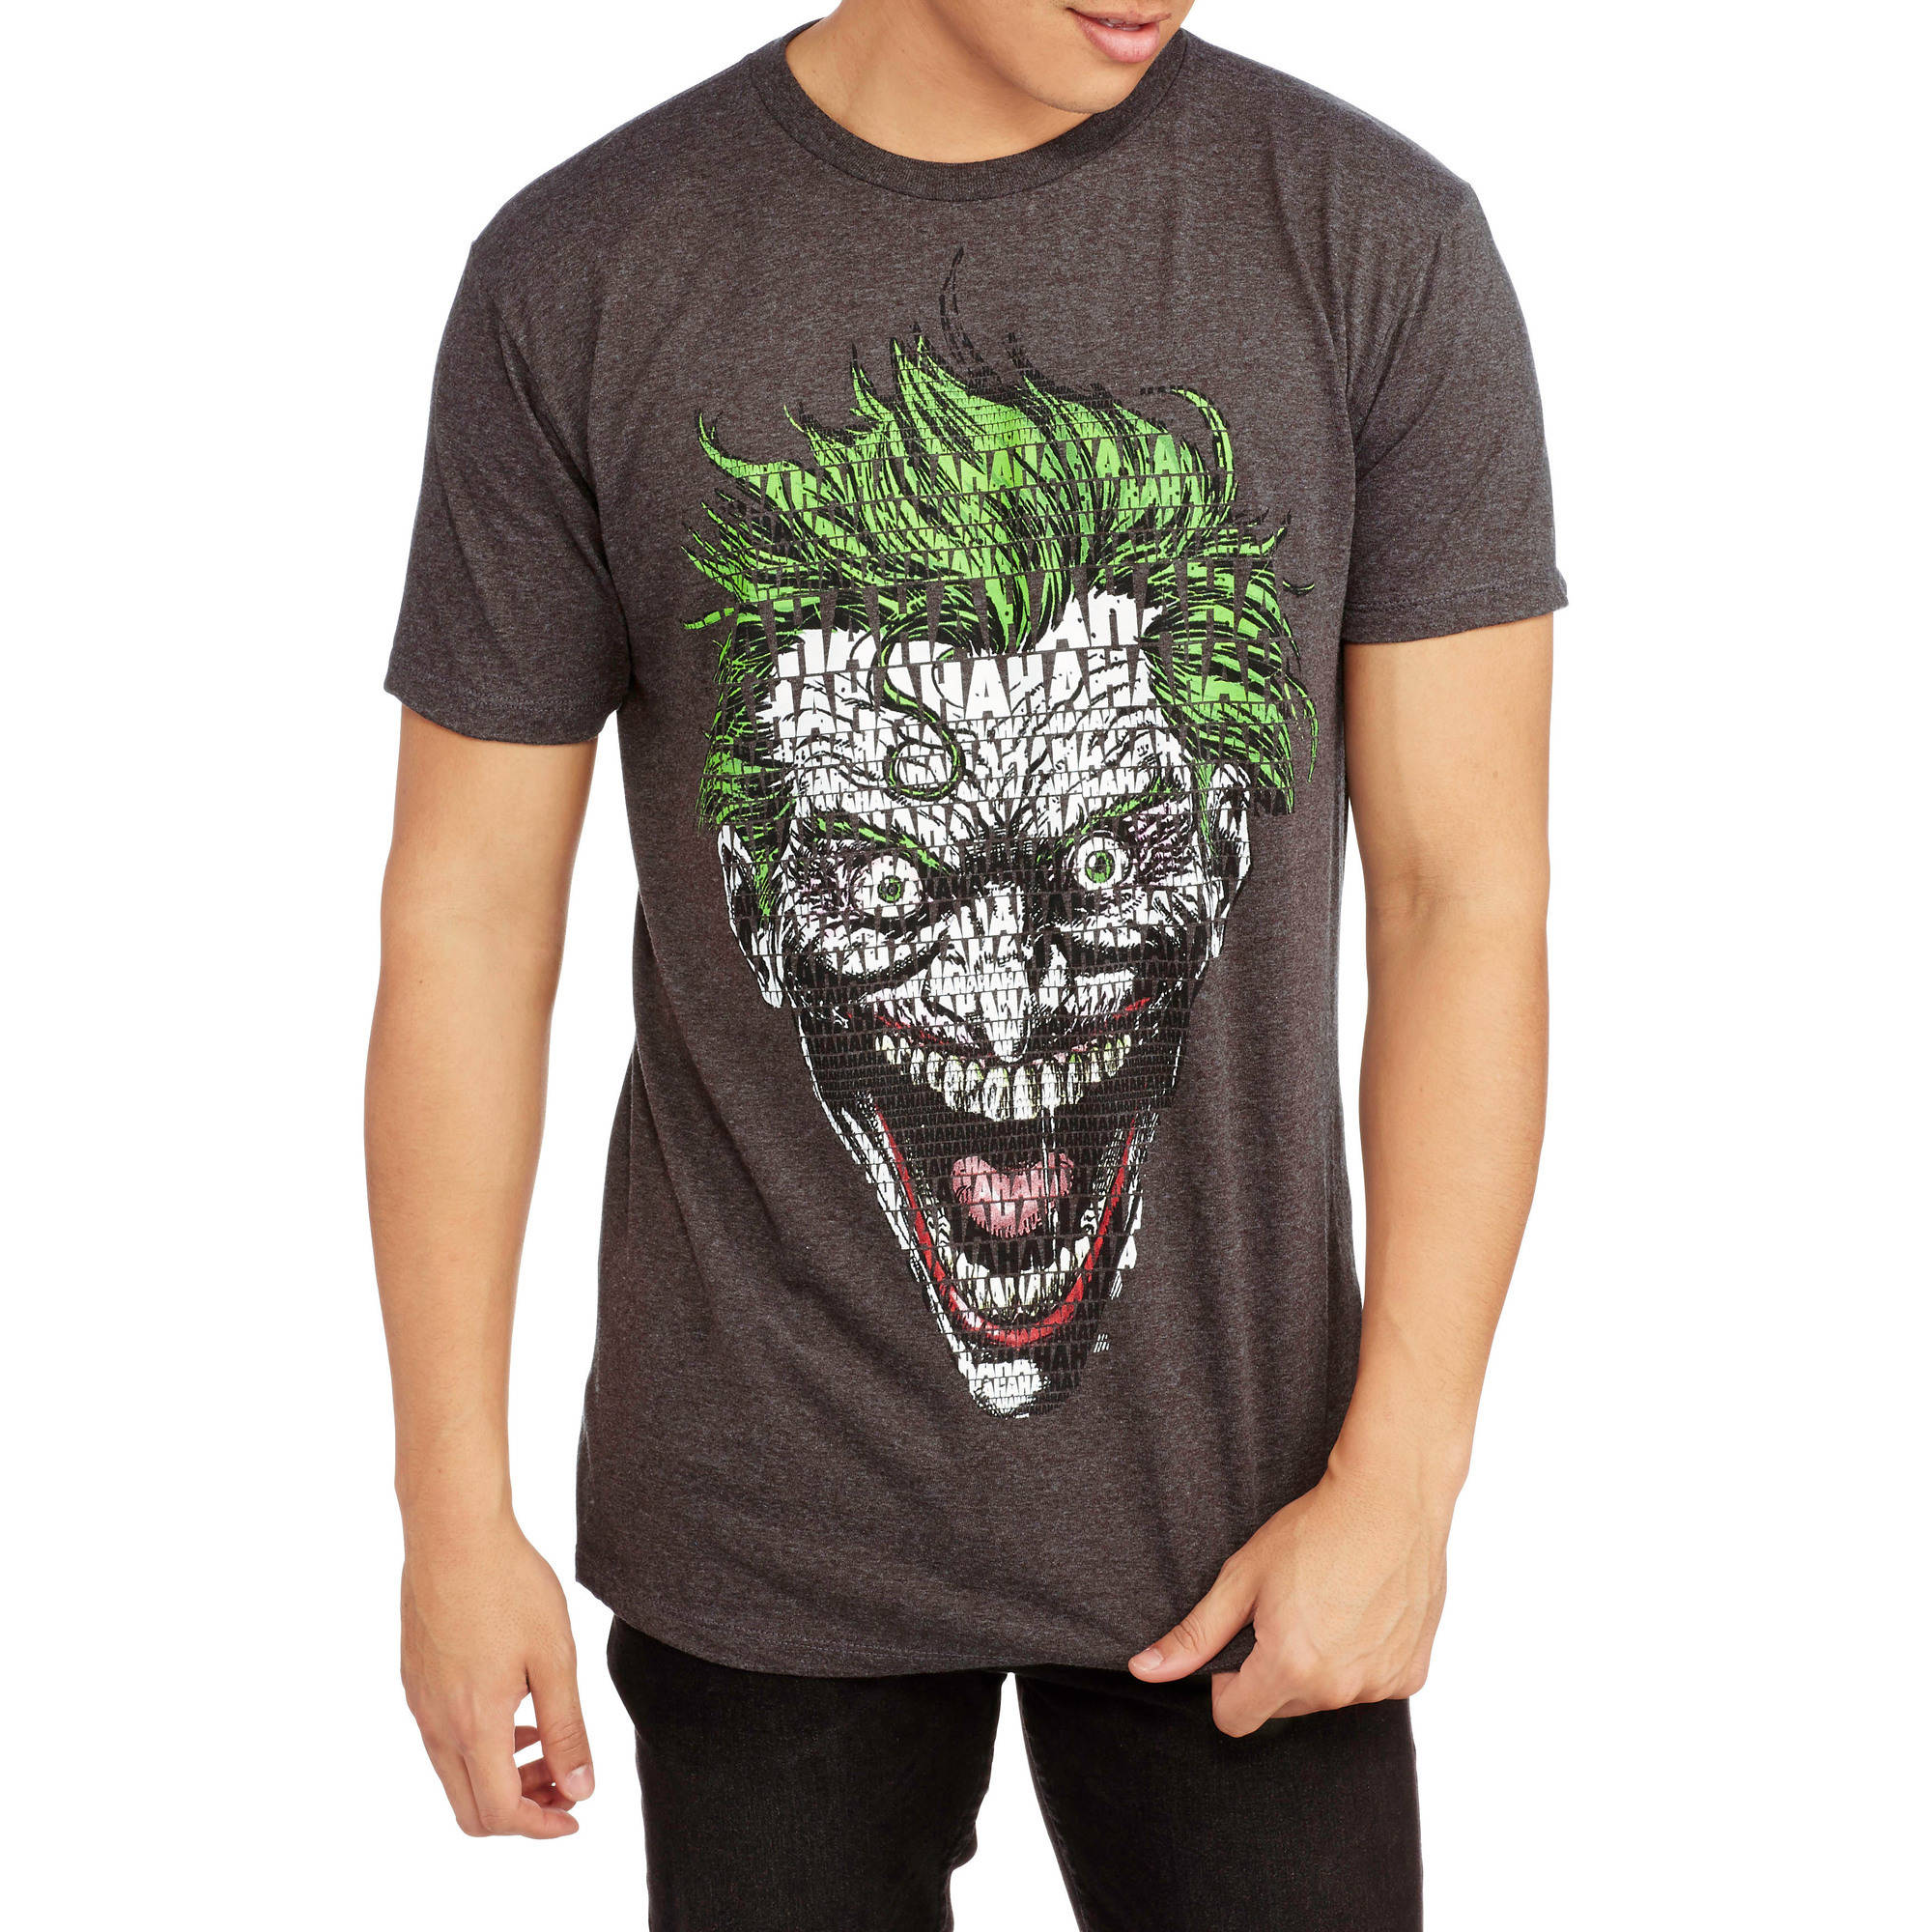 Men's Batman Joker Collage Short Sleeve Graphic Tee